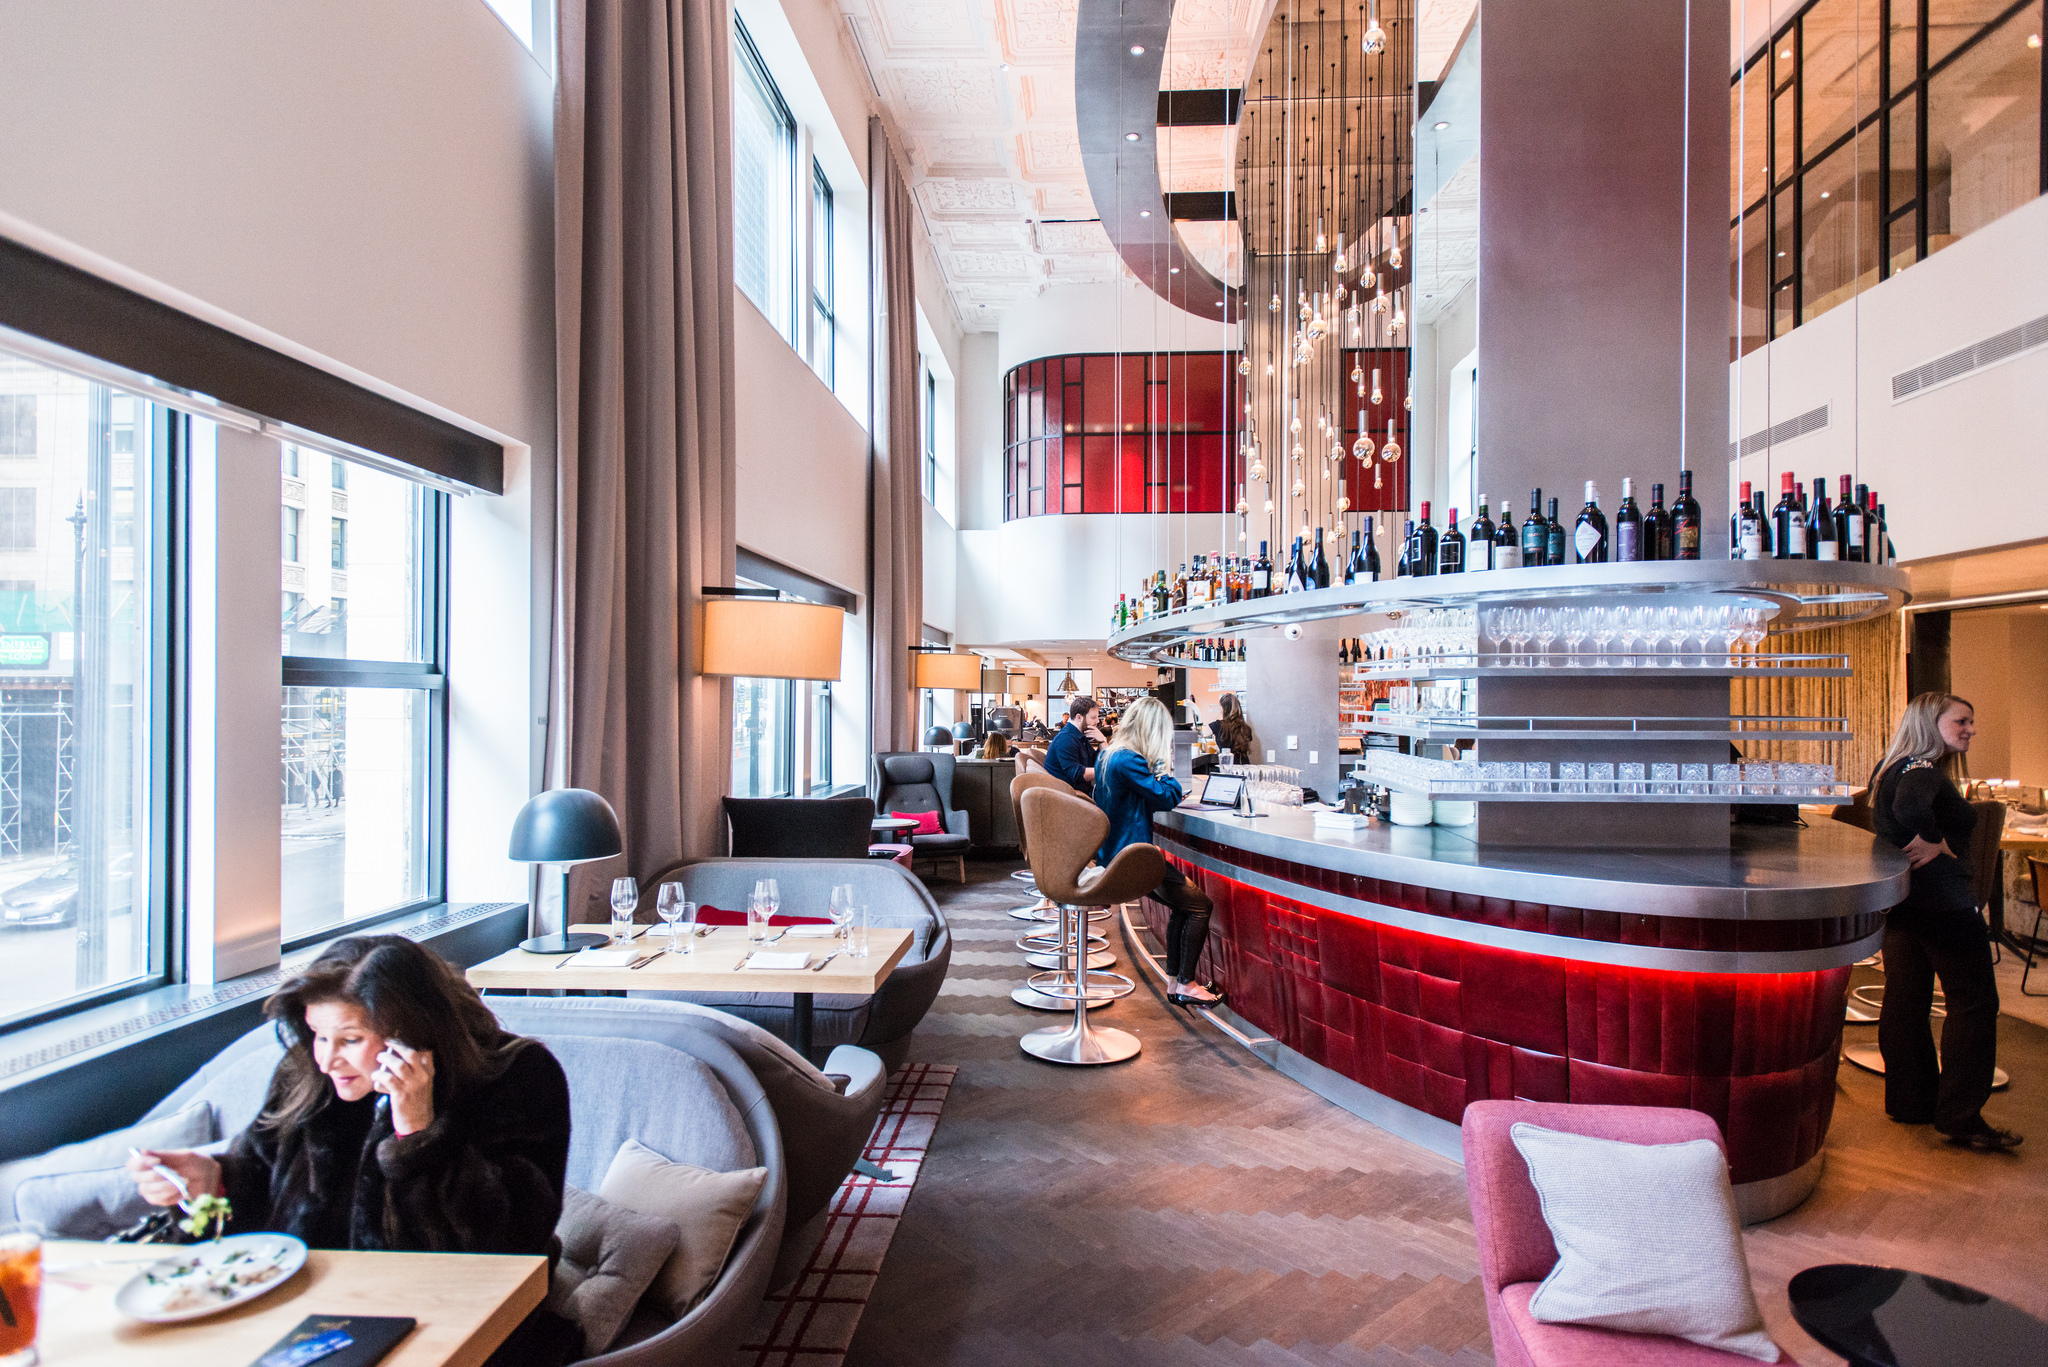 A K Inside The Commons Club Virgin Hotel Chicago S First Restaurant Eater